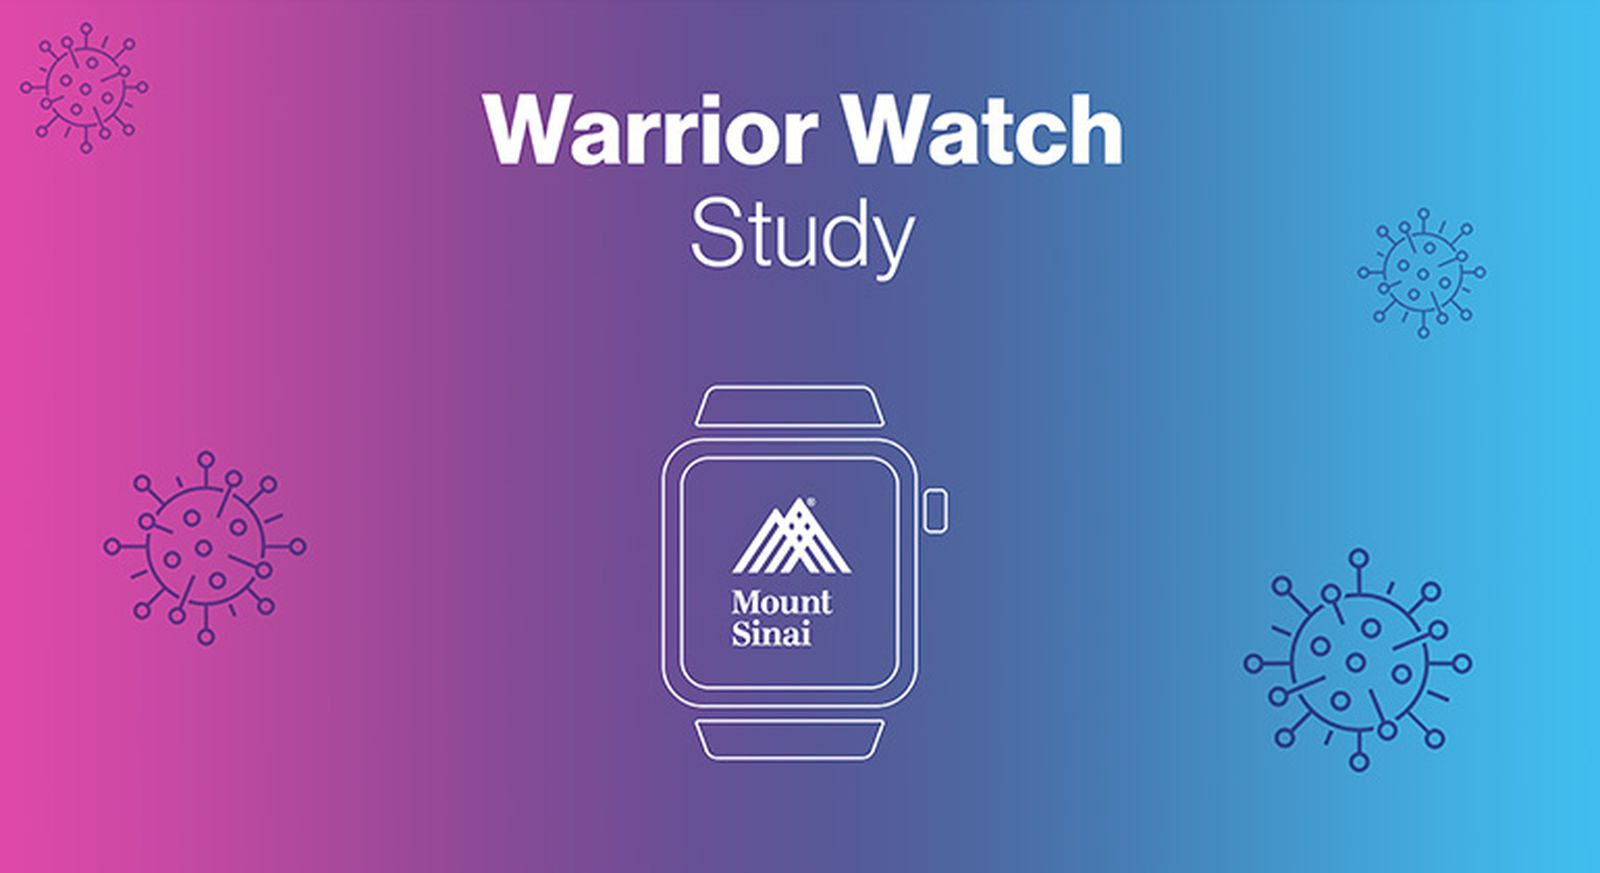 New Study Suggests Apple Watch Heart Rate Sensor Can Predict COVID-19 Up to a Week Before a Swab Test - MacRumors